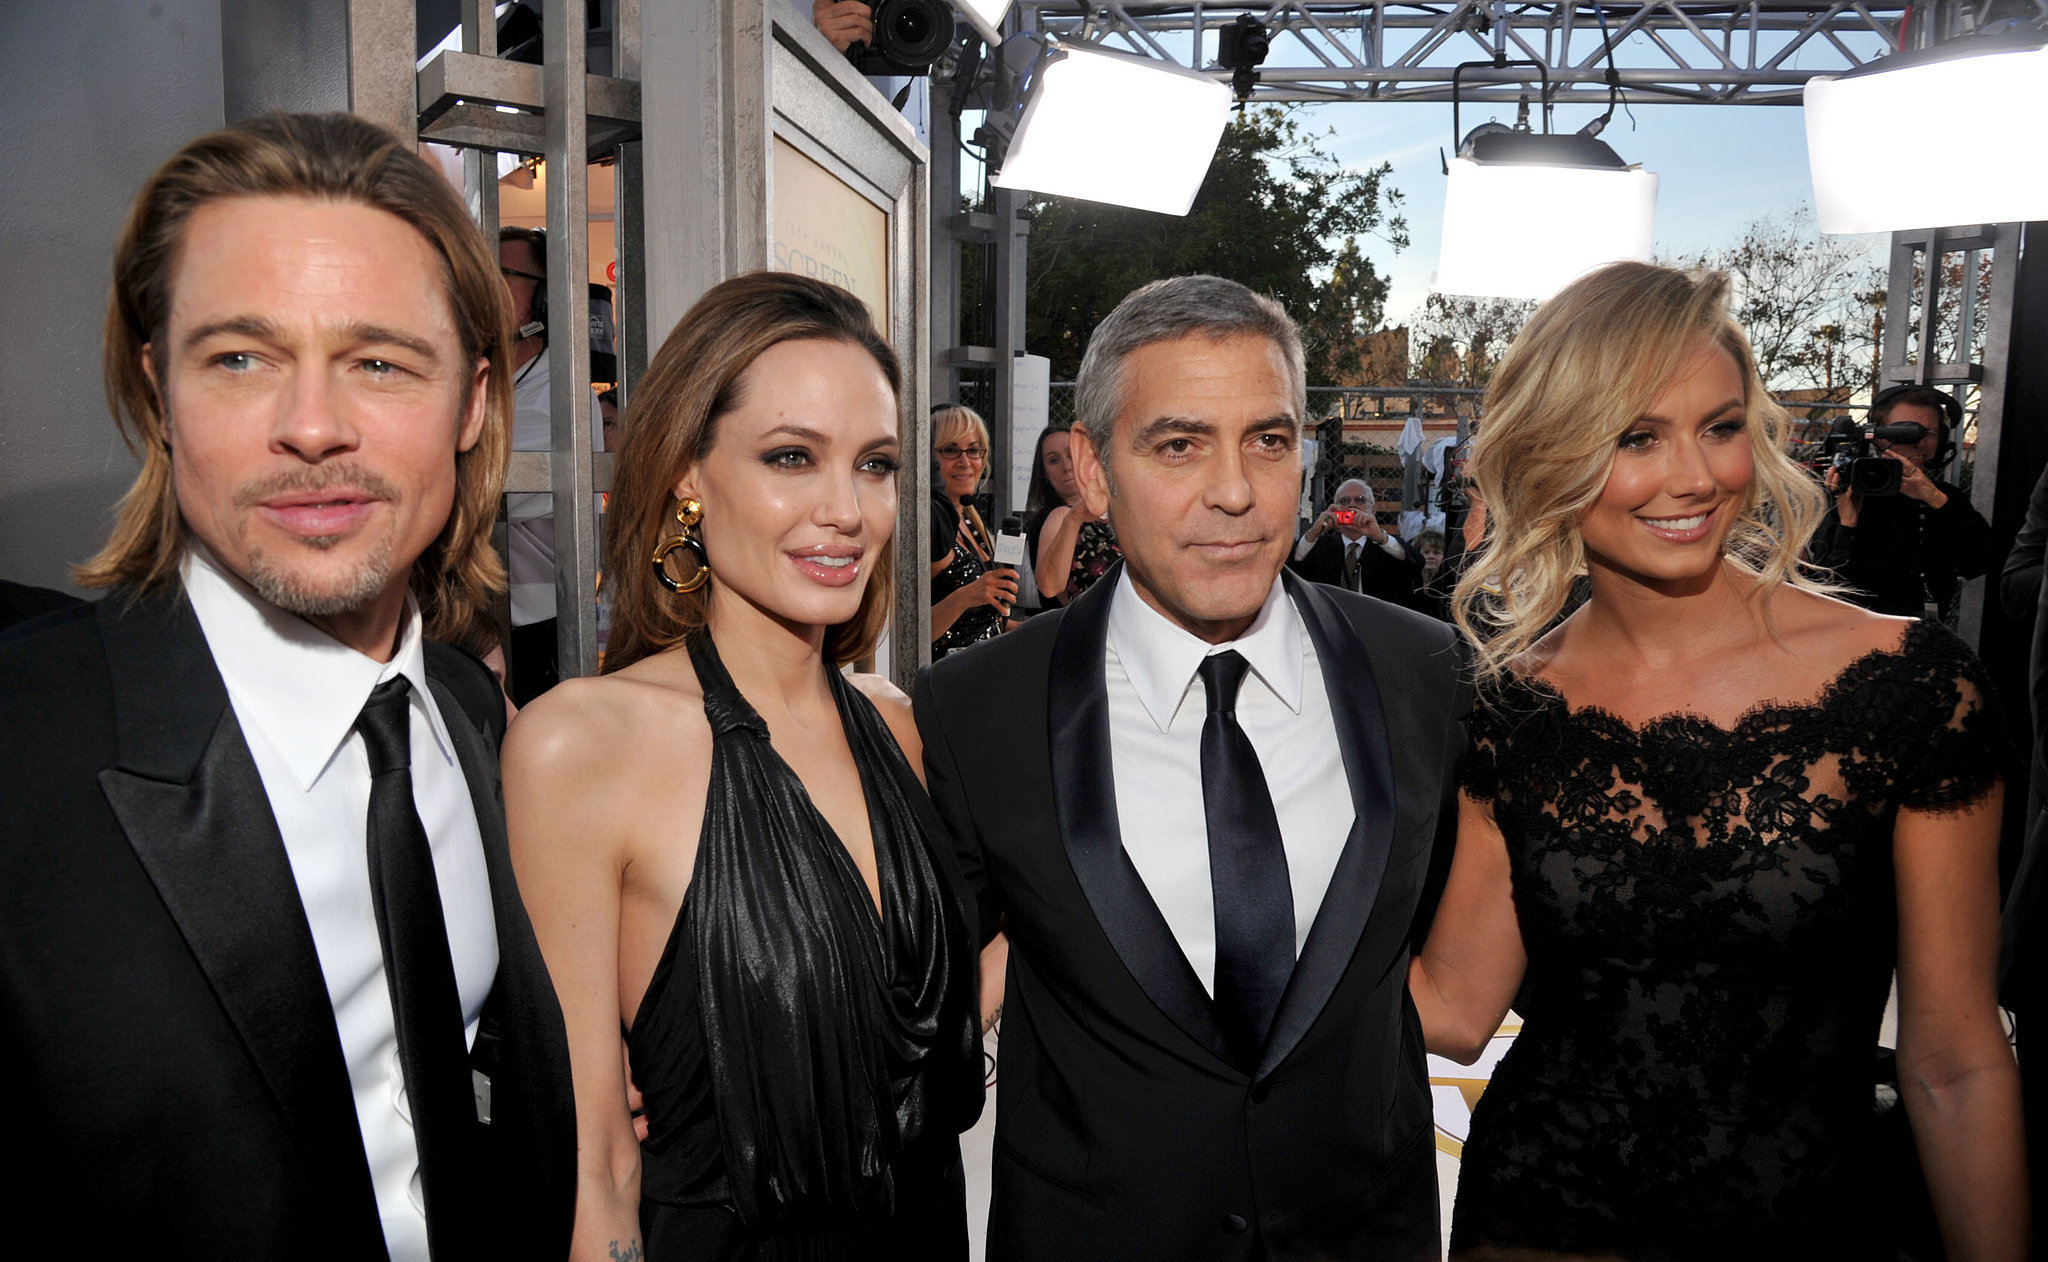 Brad Pitt, Angelina Jolie, George Clooney, and Stacy Keibler made a double date out of the award show in 2012.